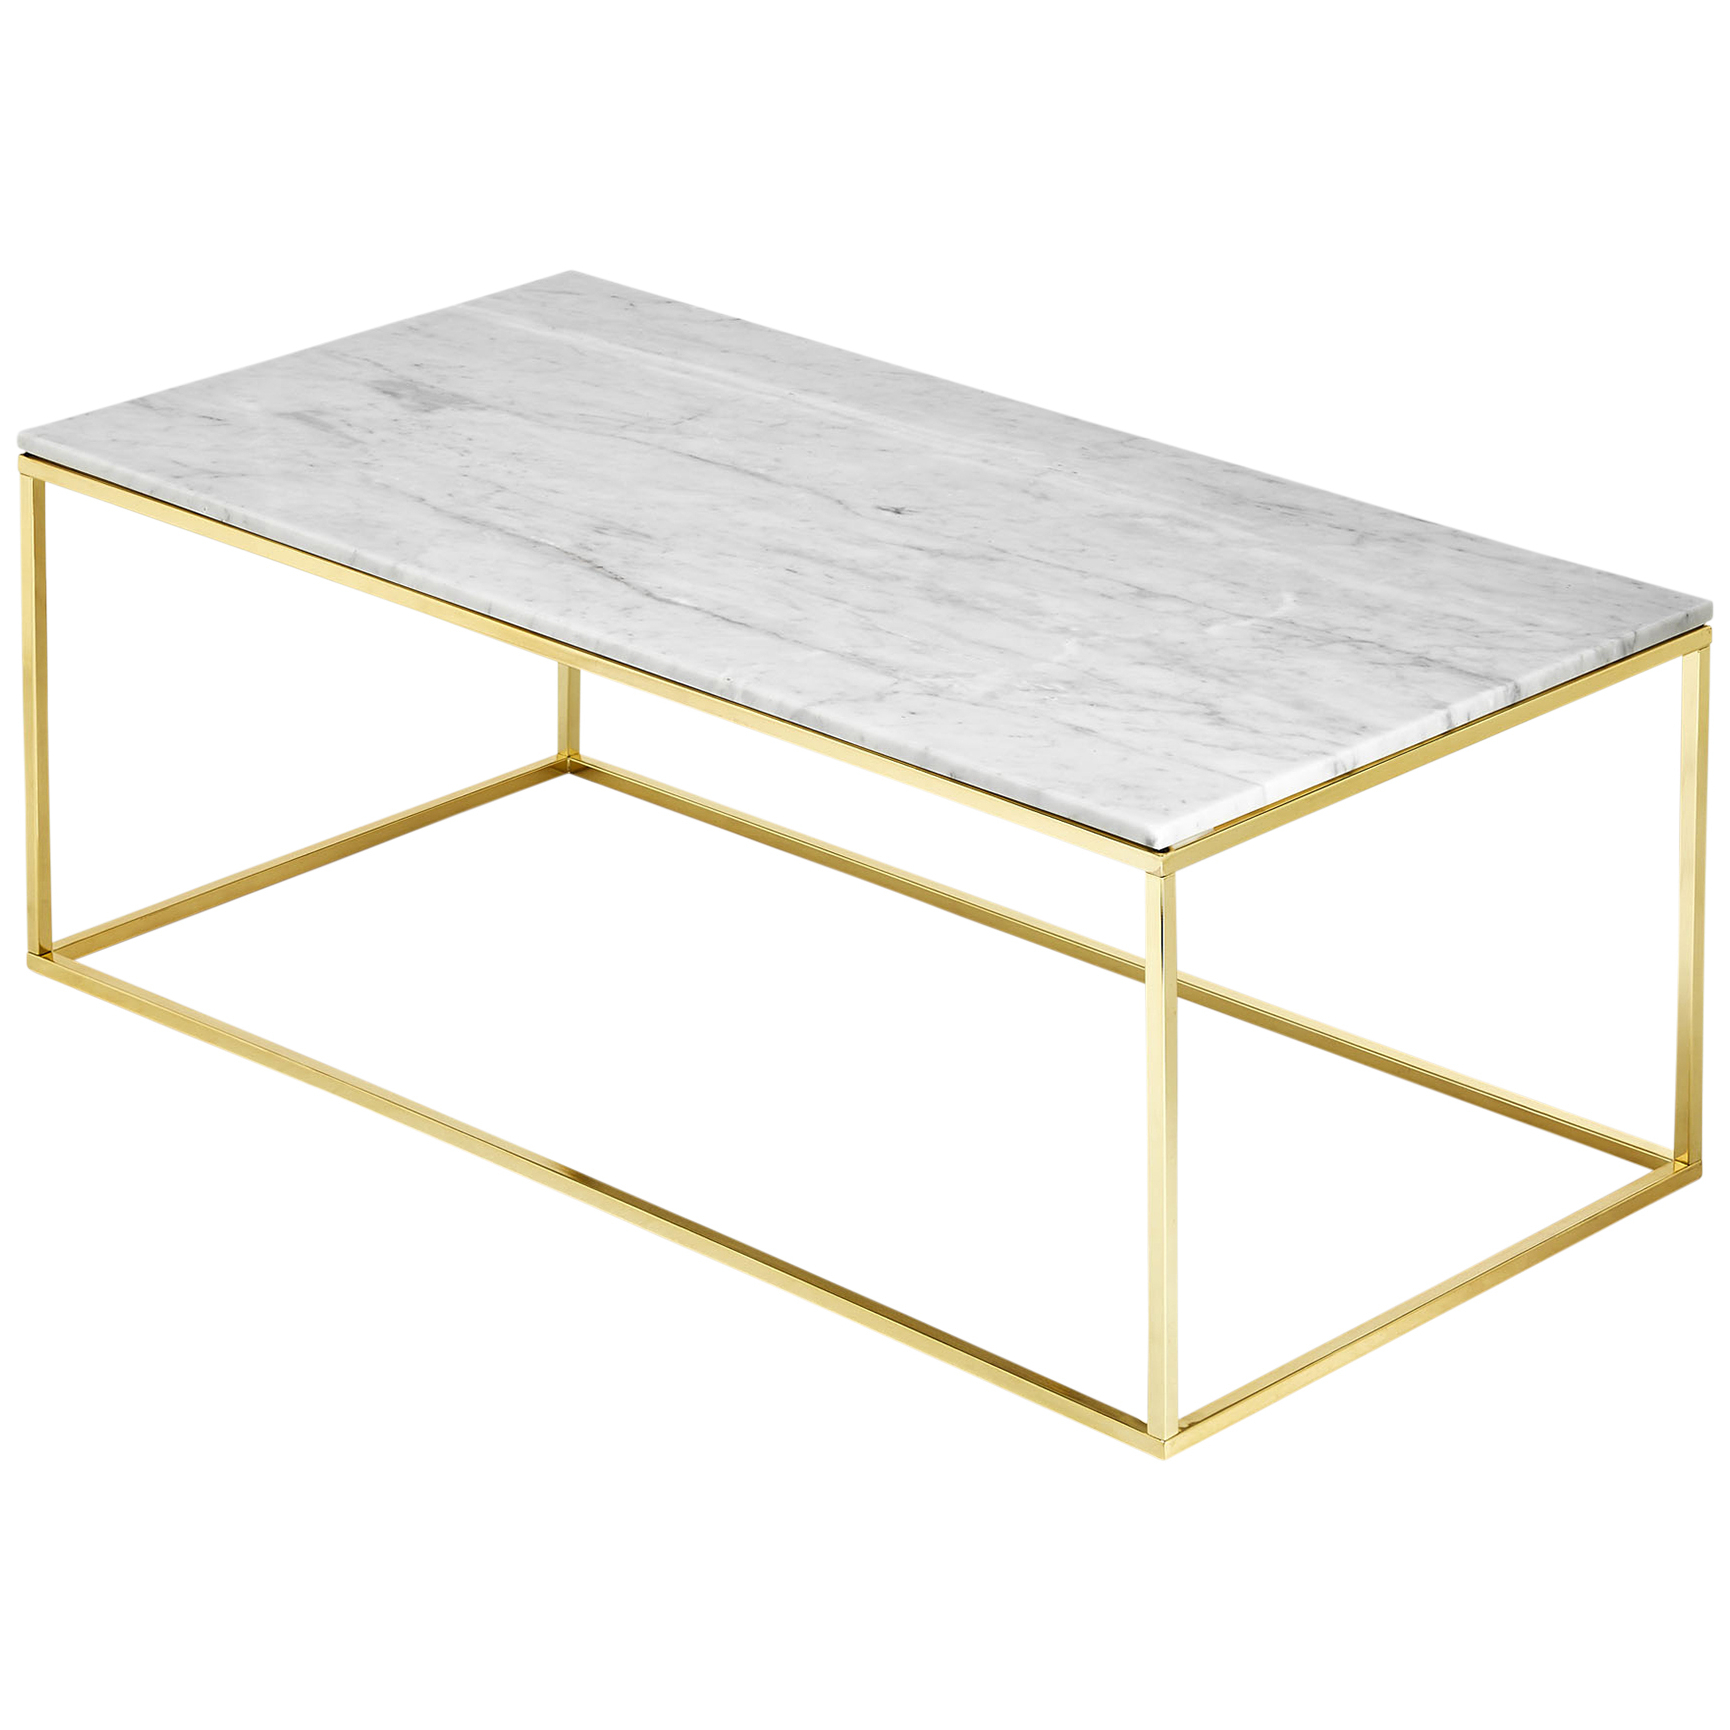 Best And Newest Marble Coffee Tables Inside Estudio Furniture Como White Marble Coffee Table & Reviews (View 3 of 20)